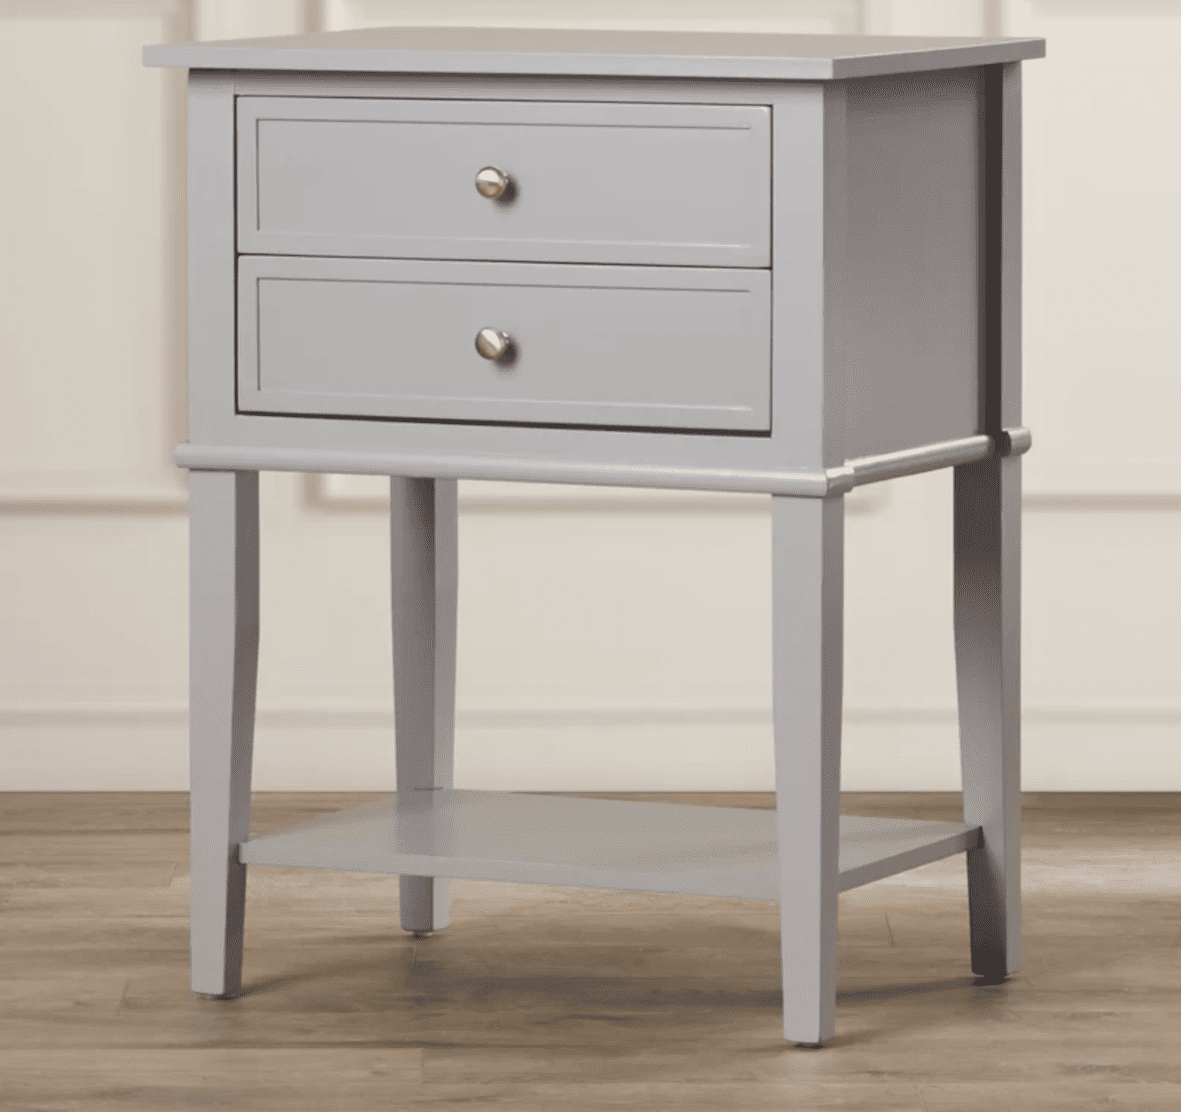 baby pulls knobs target gorgeous autumn modern heavenly clarissa liners combo assembly dresser ellie darley magnificent for organizer drawer proof accent table full size small